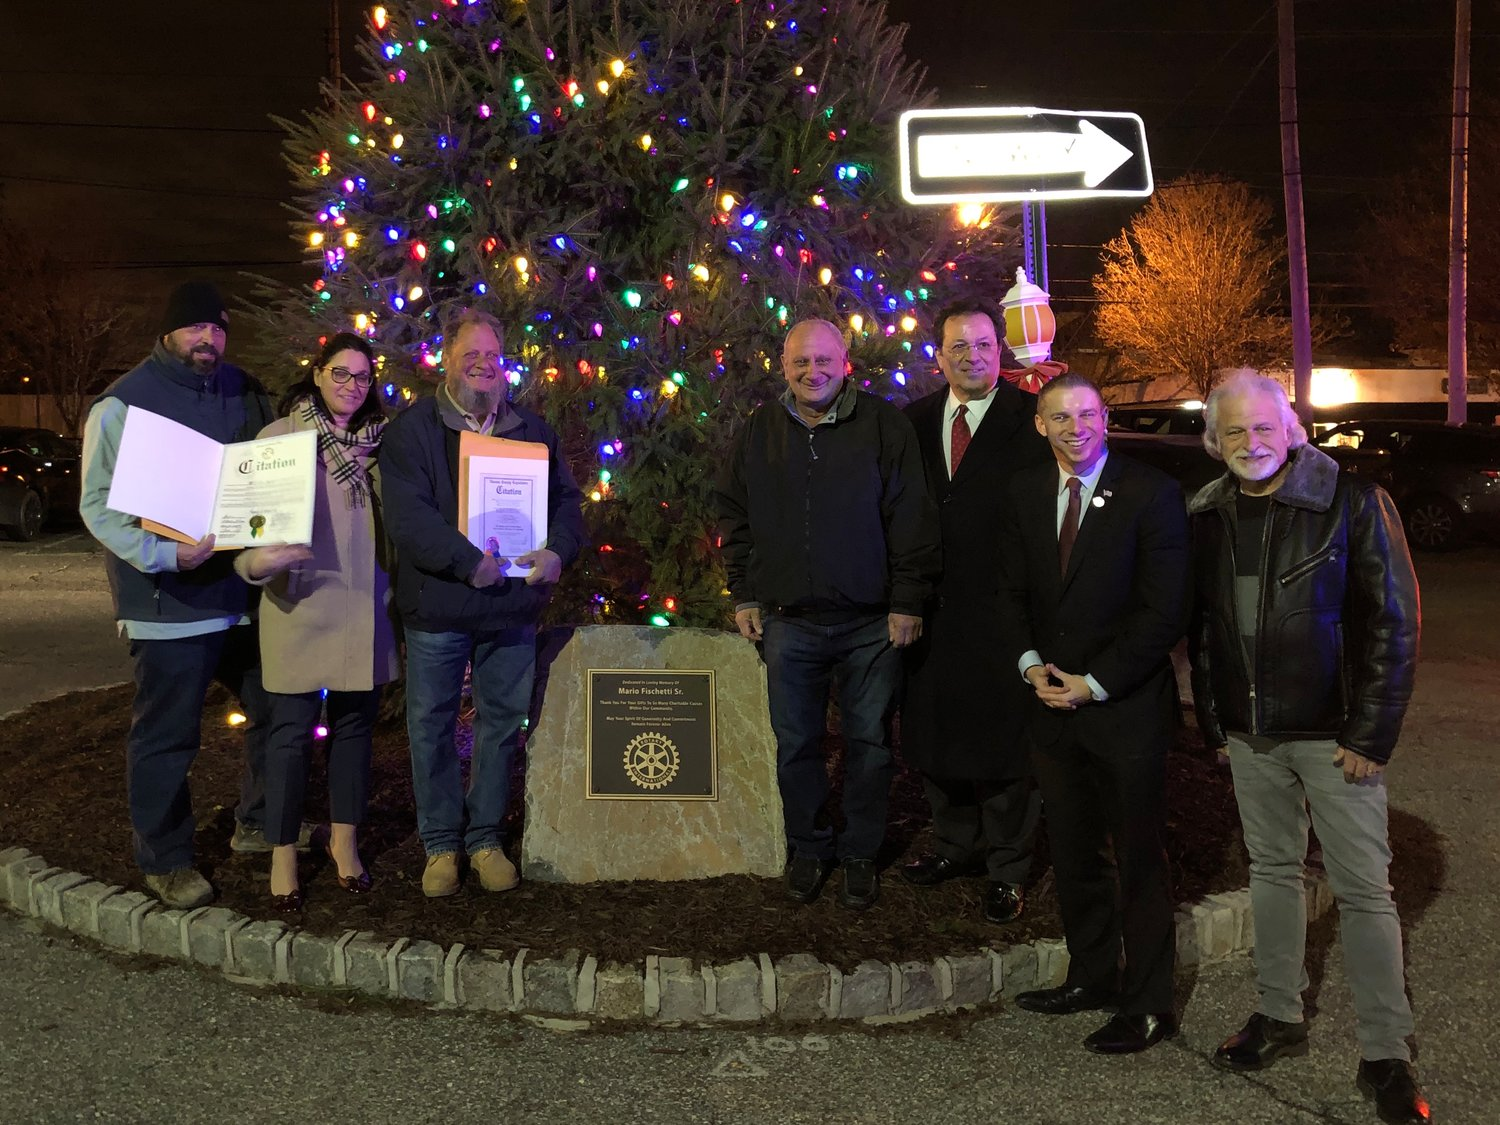 Local officials honored the Fischetti and Papiro families with citations to honor their hard work.